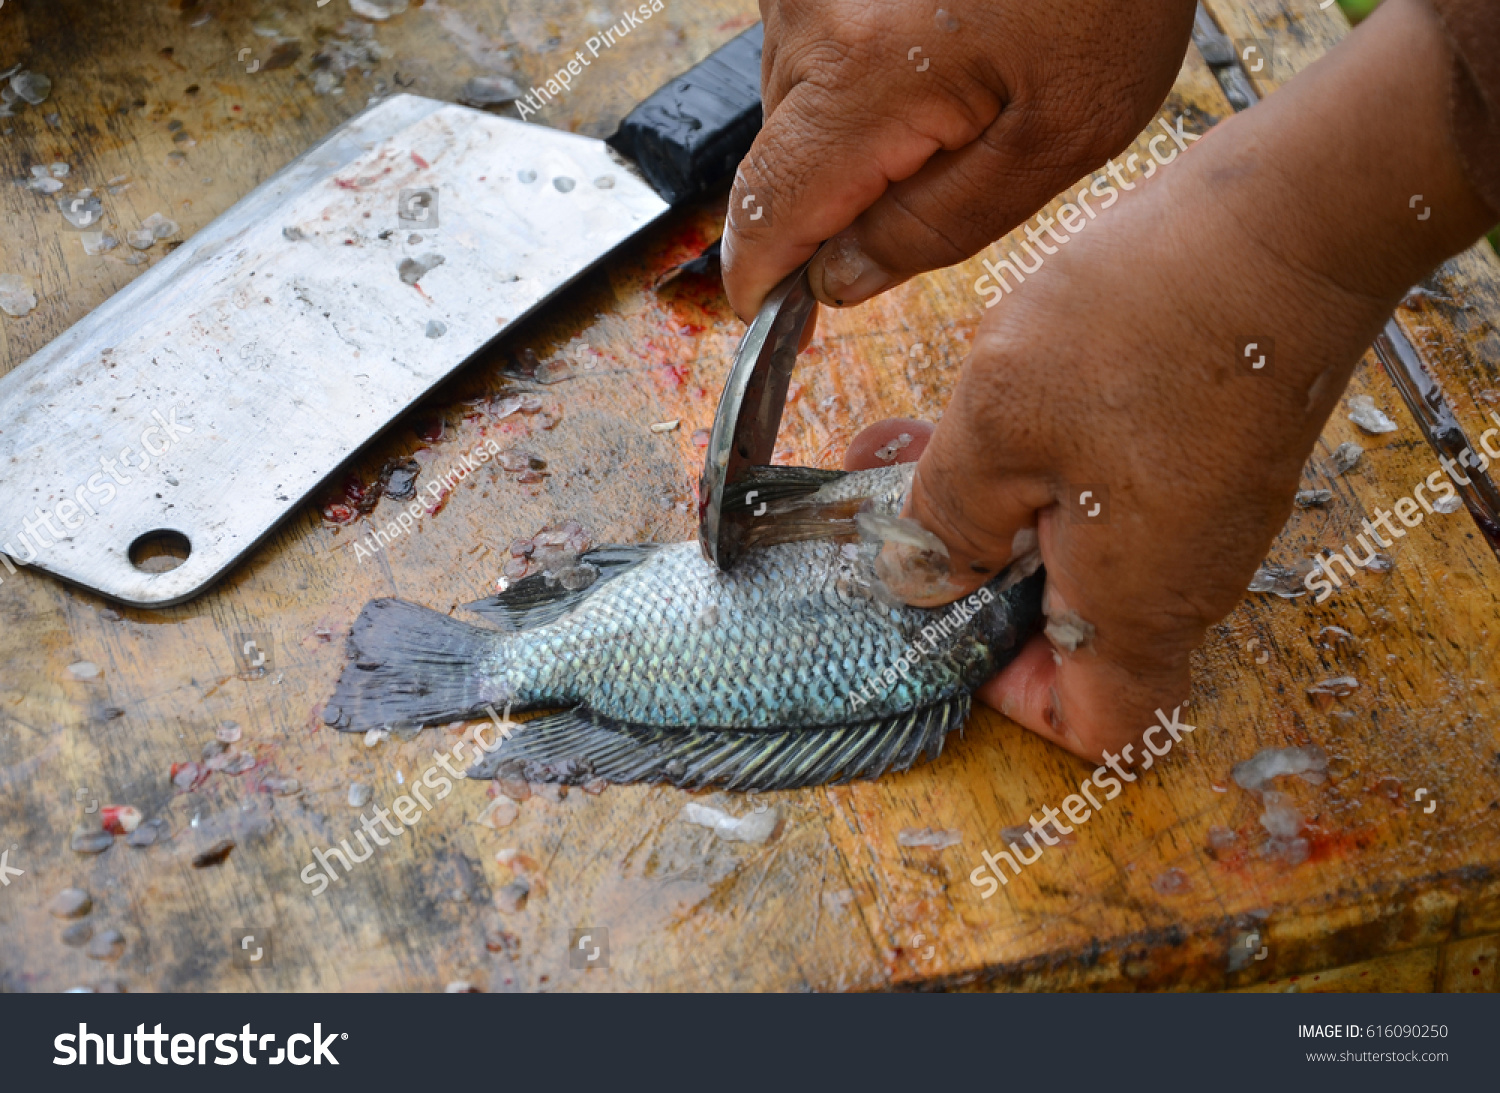 How to Scale a Fish How to Scale a Fish new foto